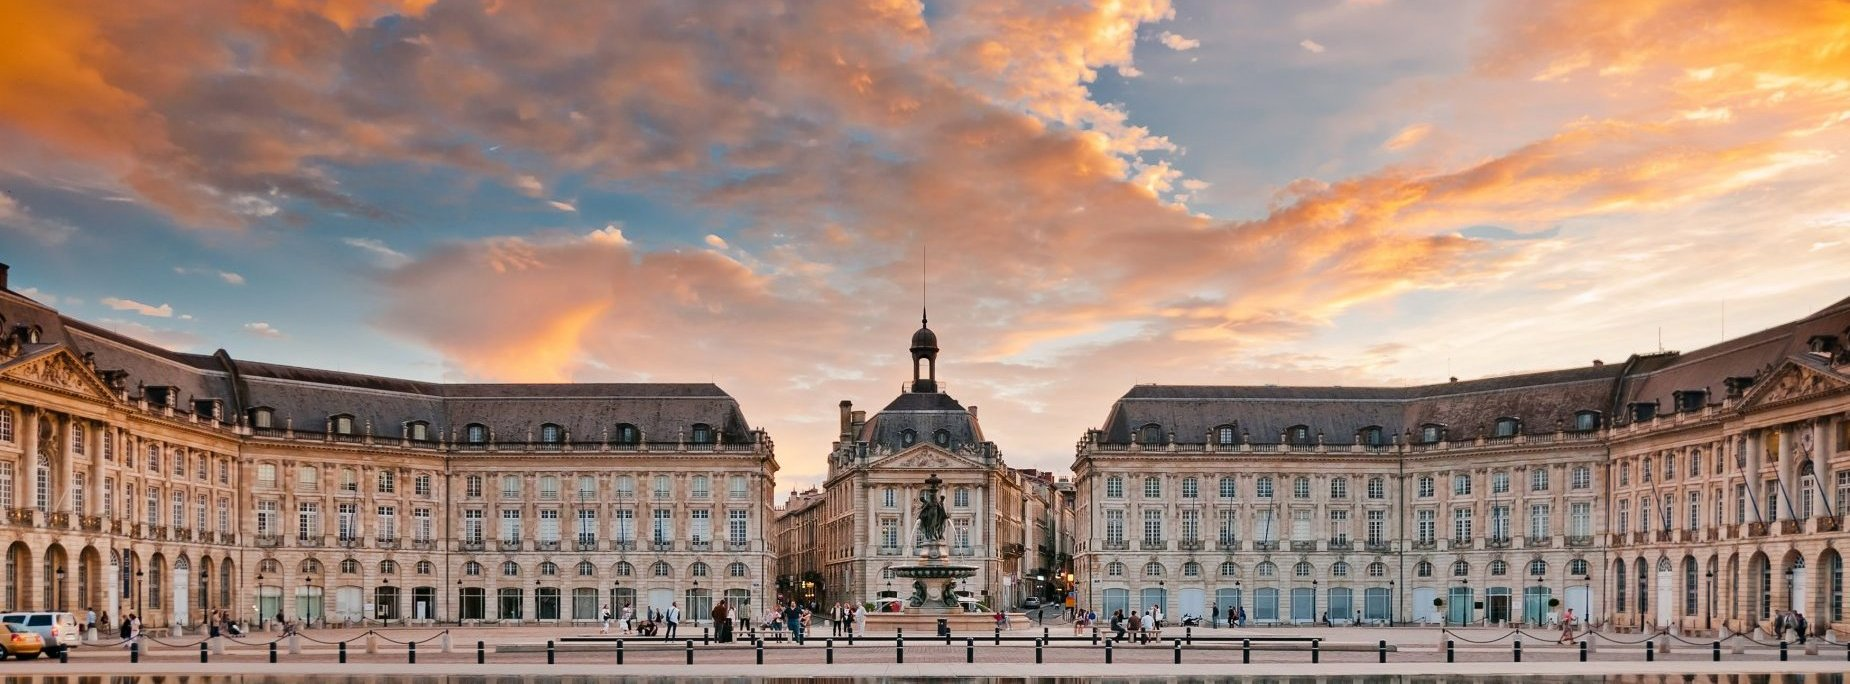 Bordeaux Top Destination » Top Things to See & do While